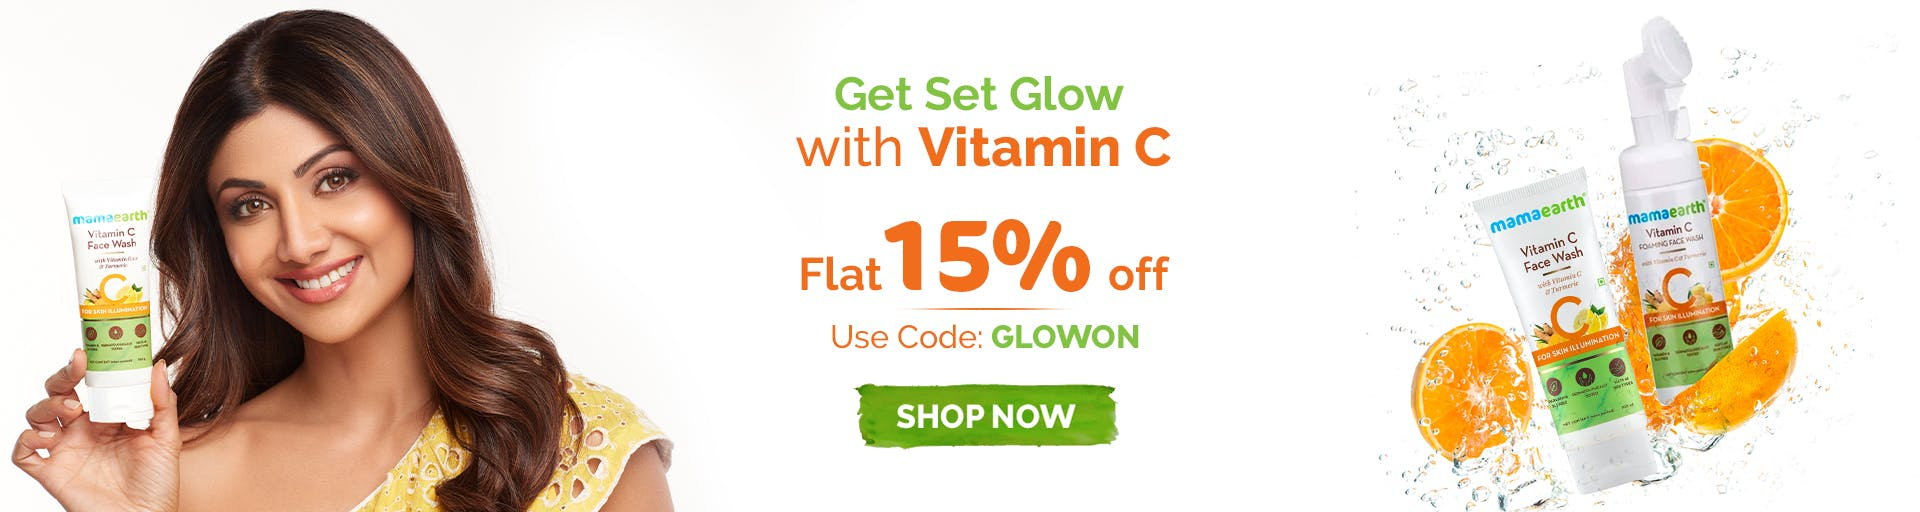 mamaearth.in - Get Flat 15% OFF on MamaEarth Vitamin C Body Care Products